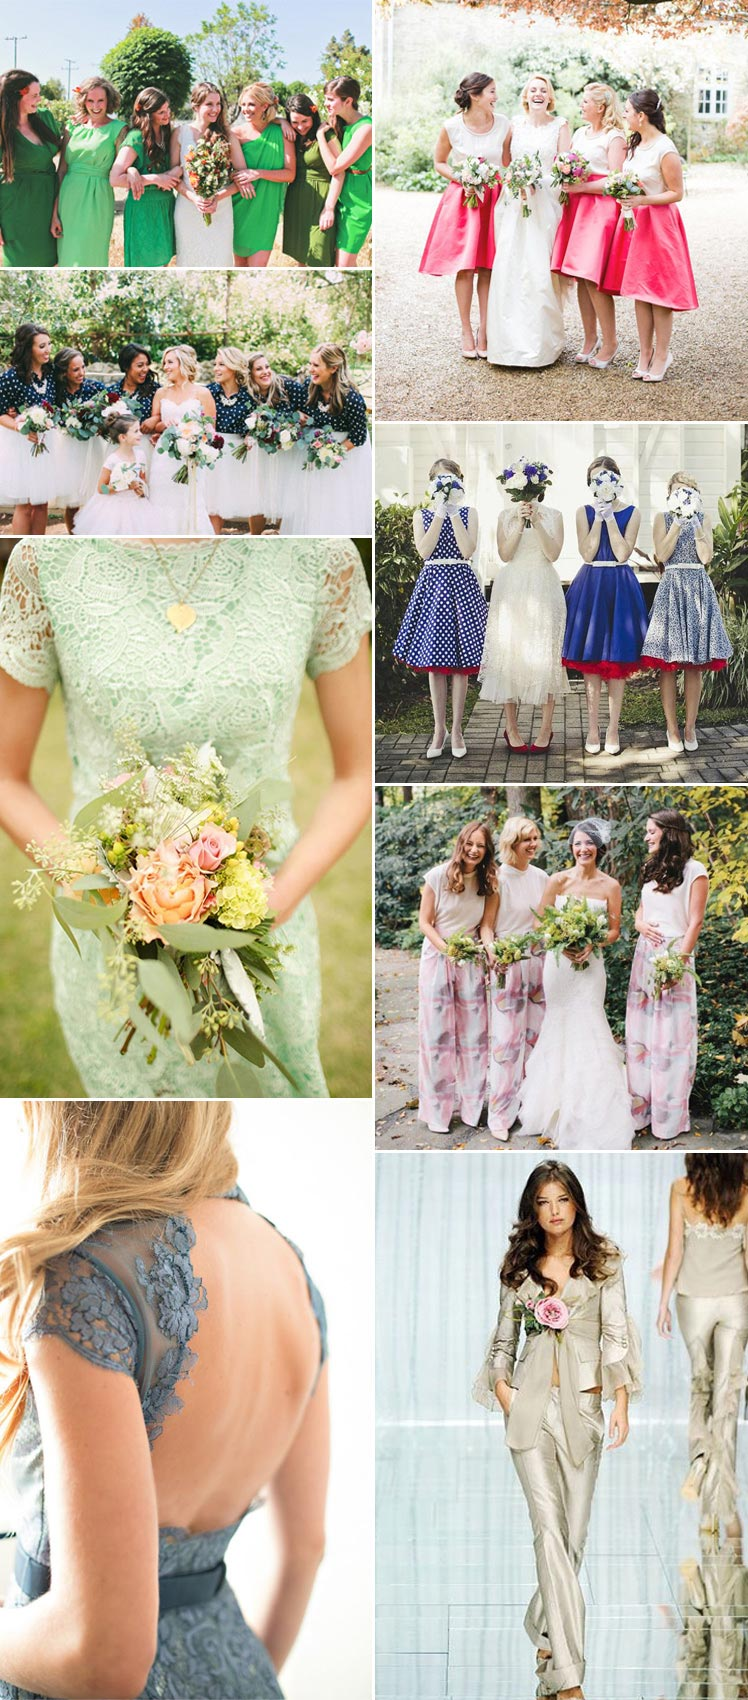 from florals to trousers - beautiful bridesmaid inspiration